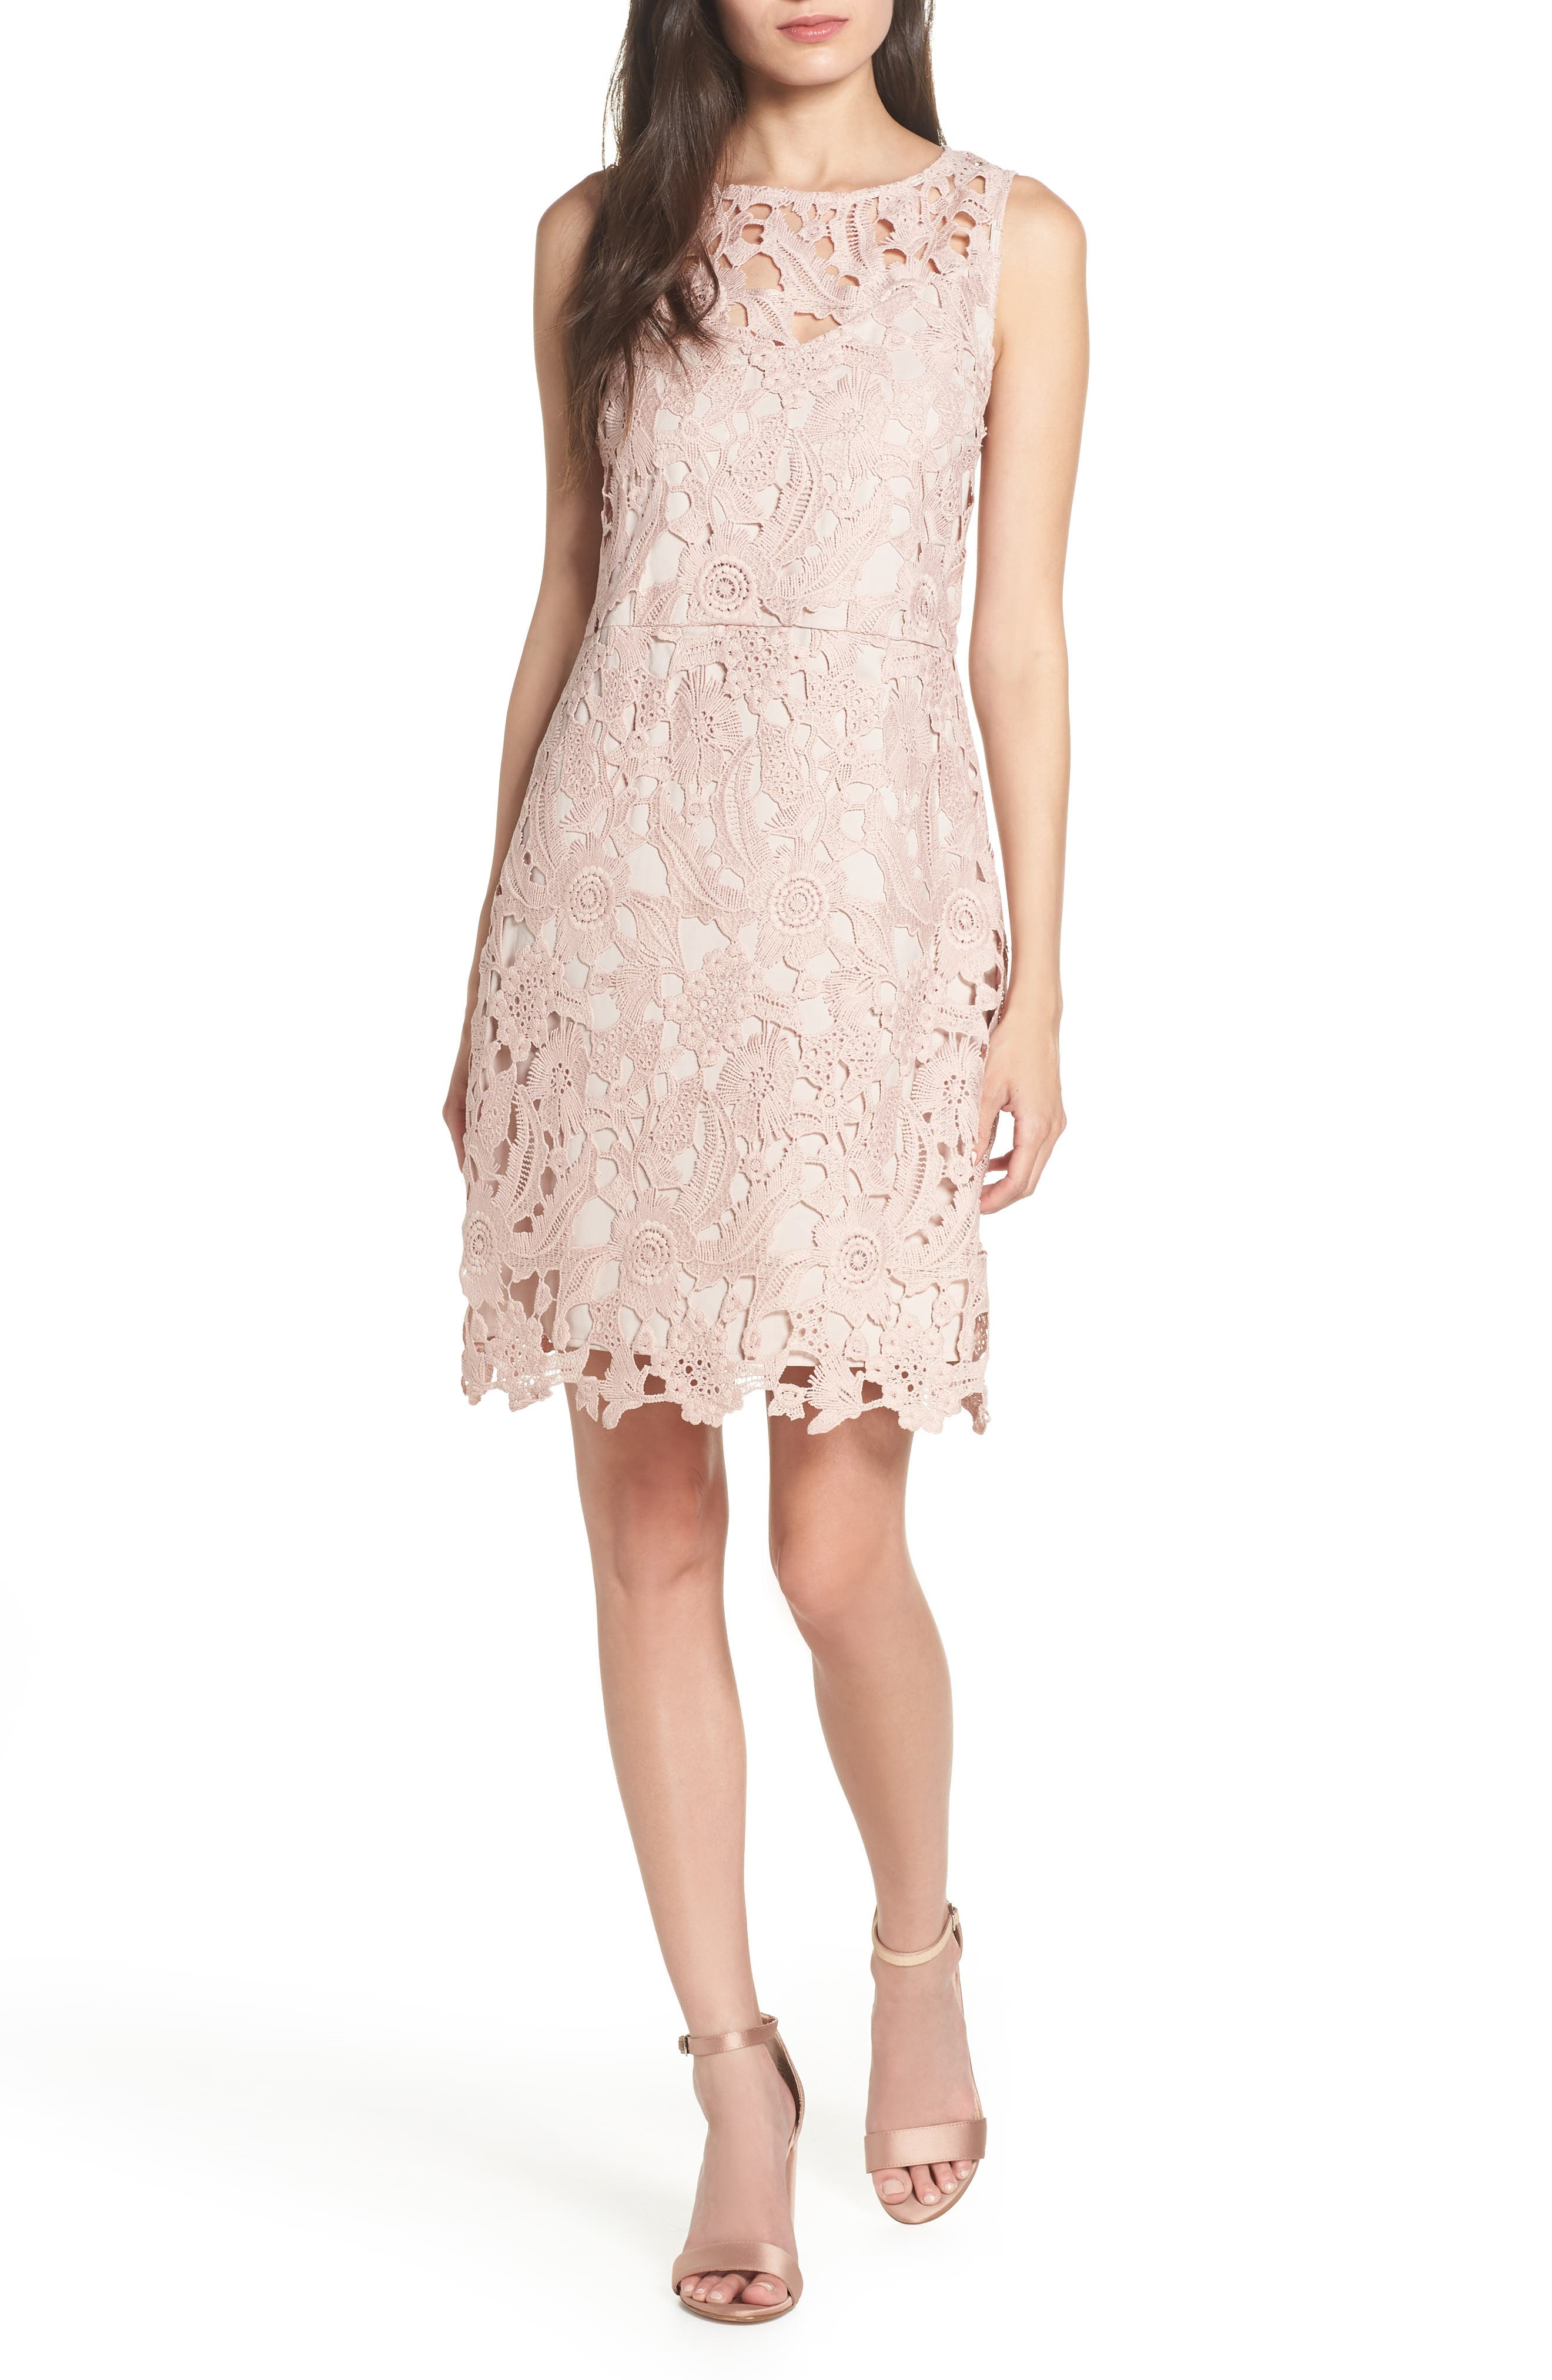 SAM EDELMAN Lace Sheath Dress, Main, color, BLUSH